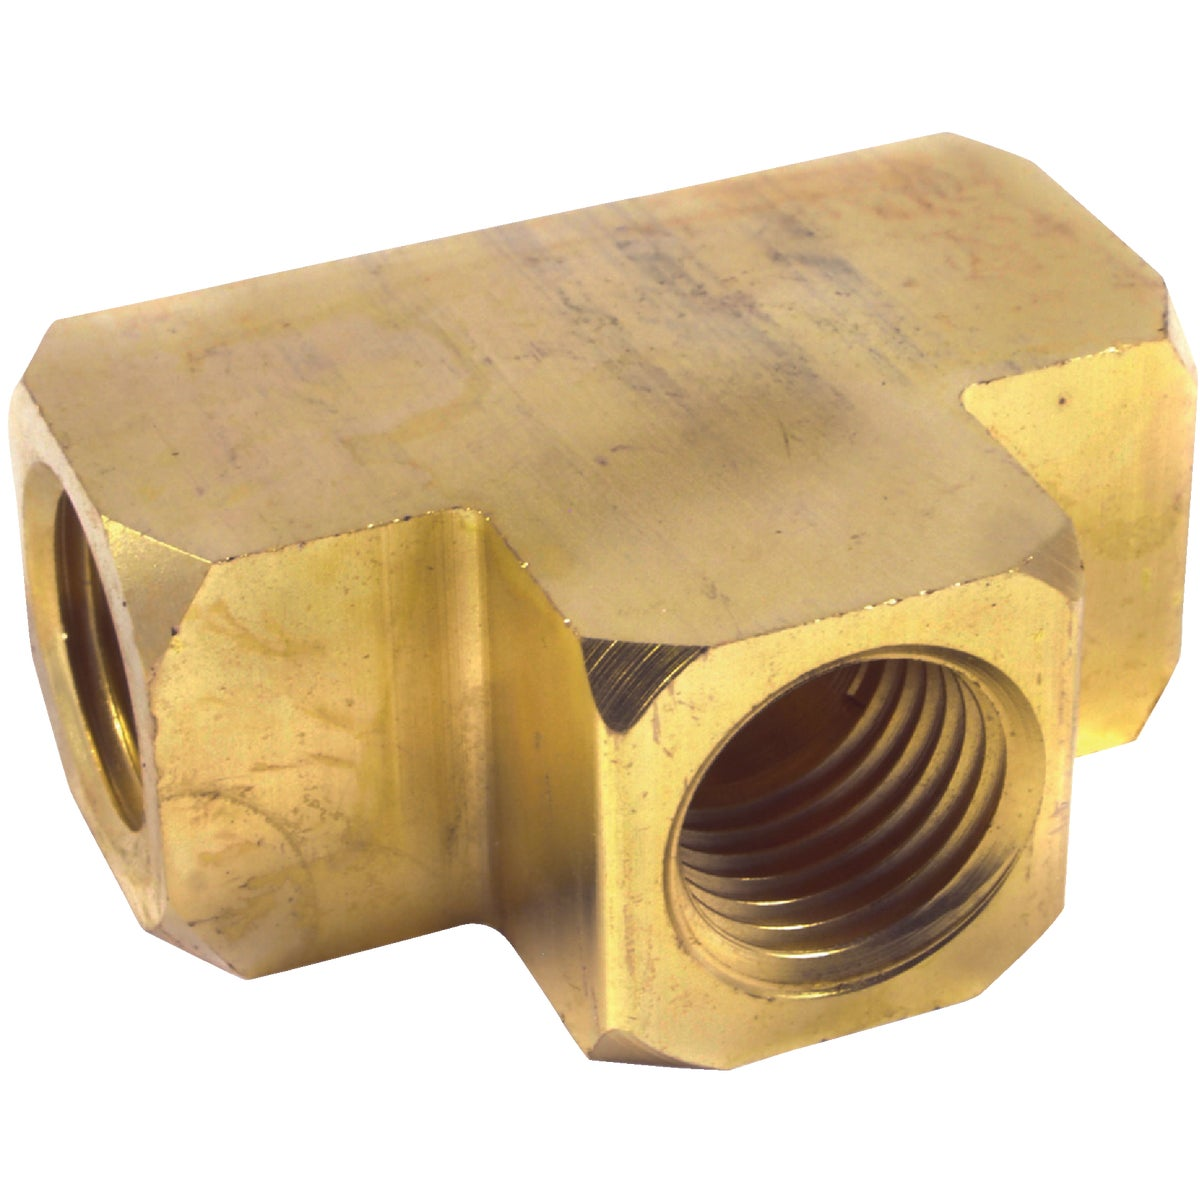 """1/4"""" BRASS TEE - 75363 by Forney Industries"""